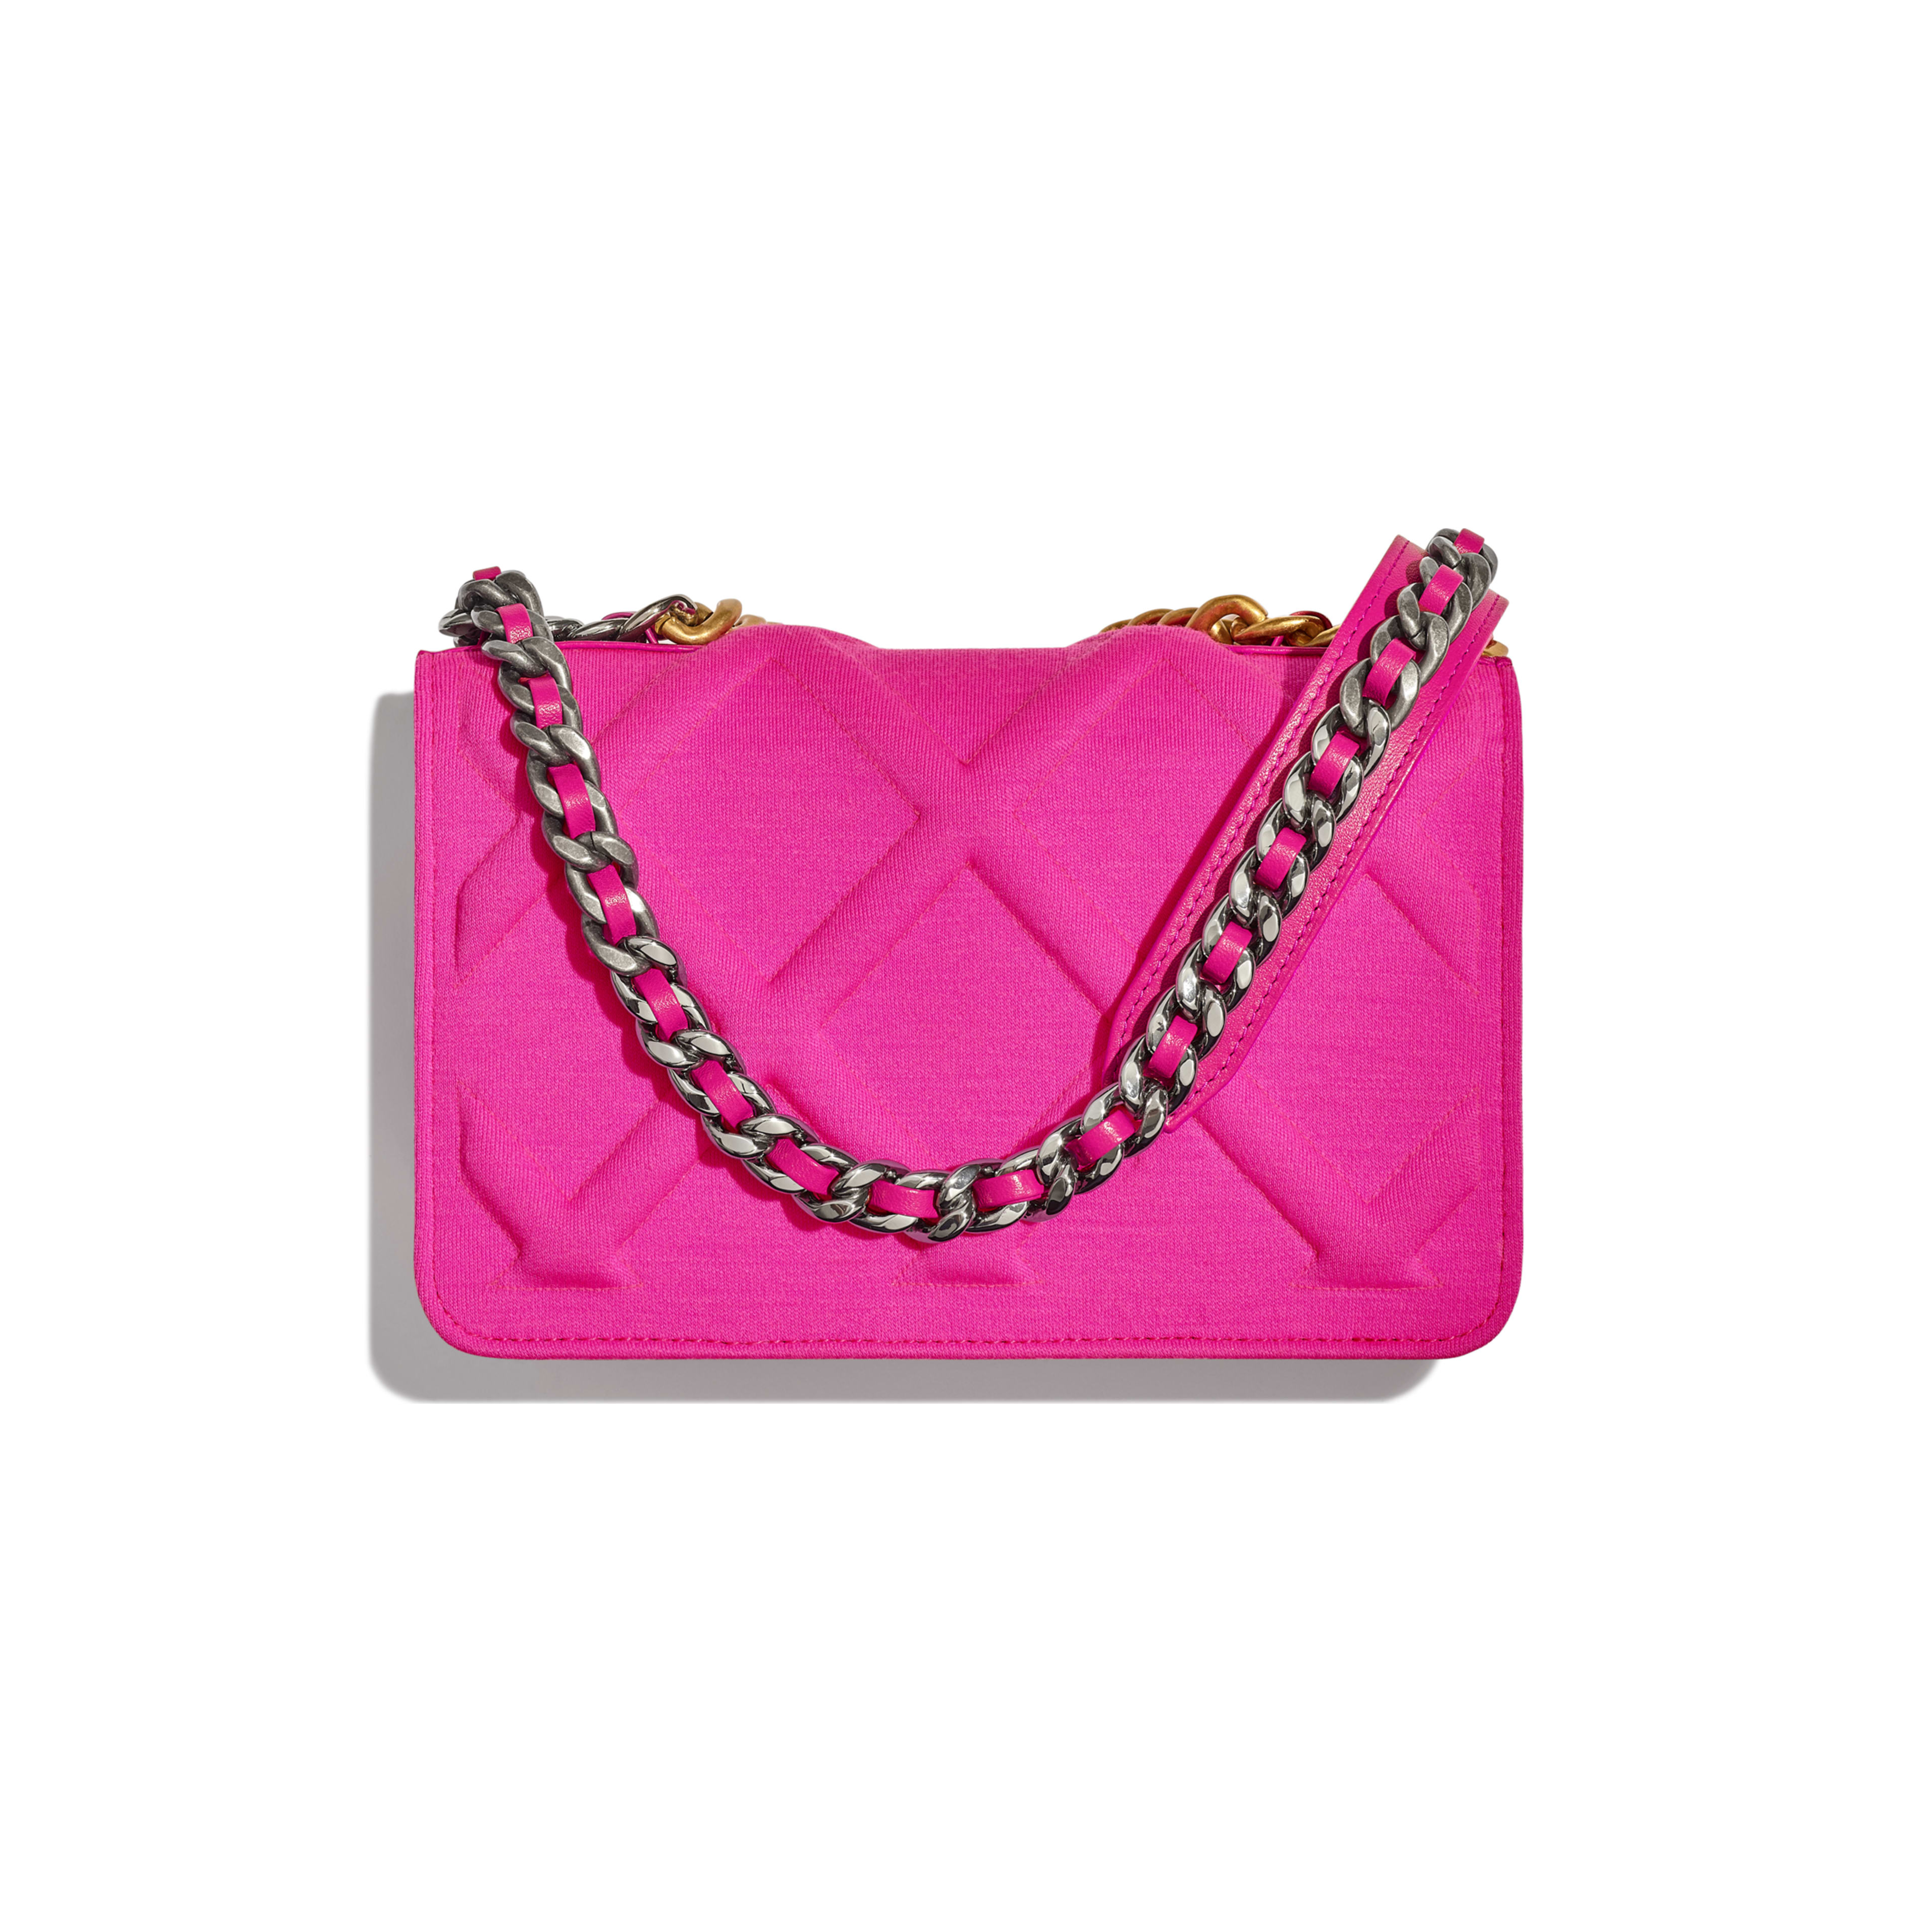 CHANEL 19 Wallet on Chain - Fuchsia - Jersey, Gold-Tone, Silver-Tone & Ruthenium-Finish Metal - Alternative view - see full sized version